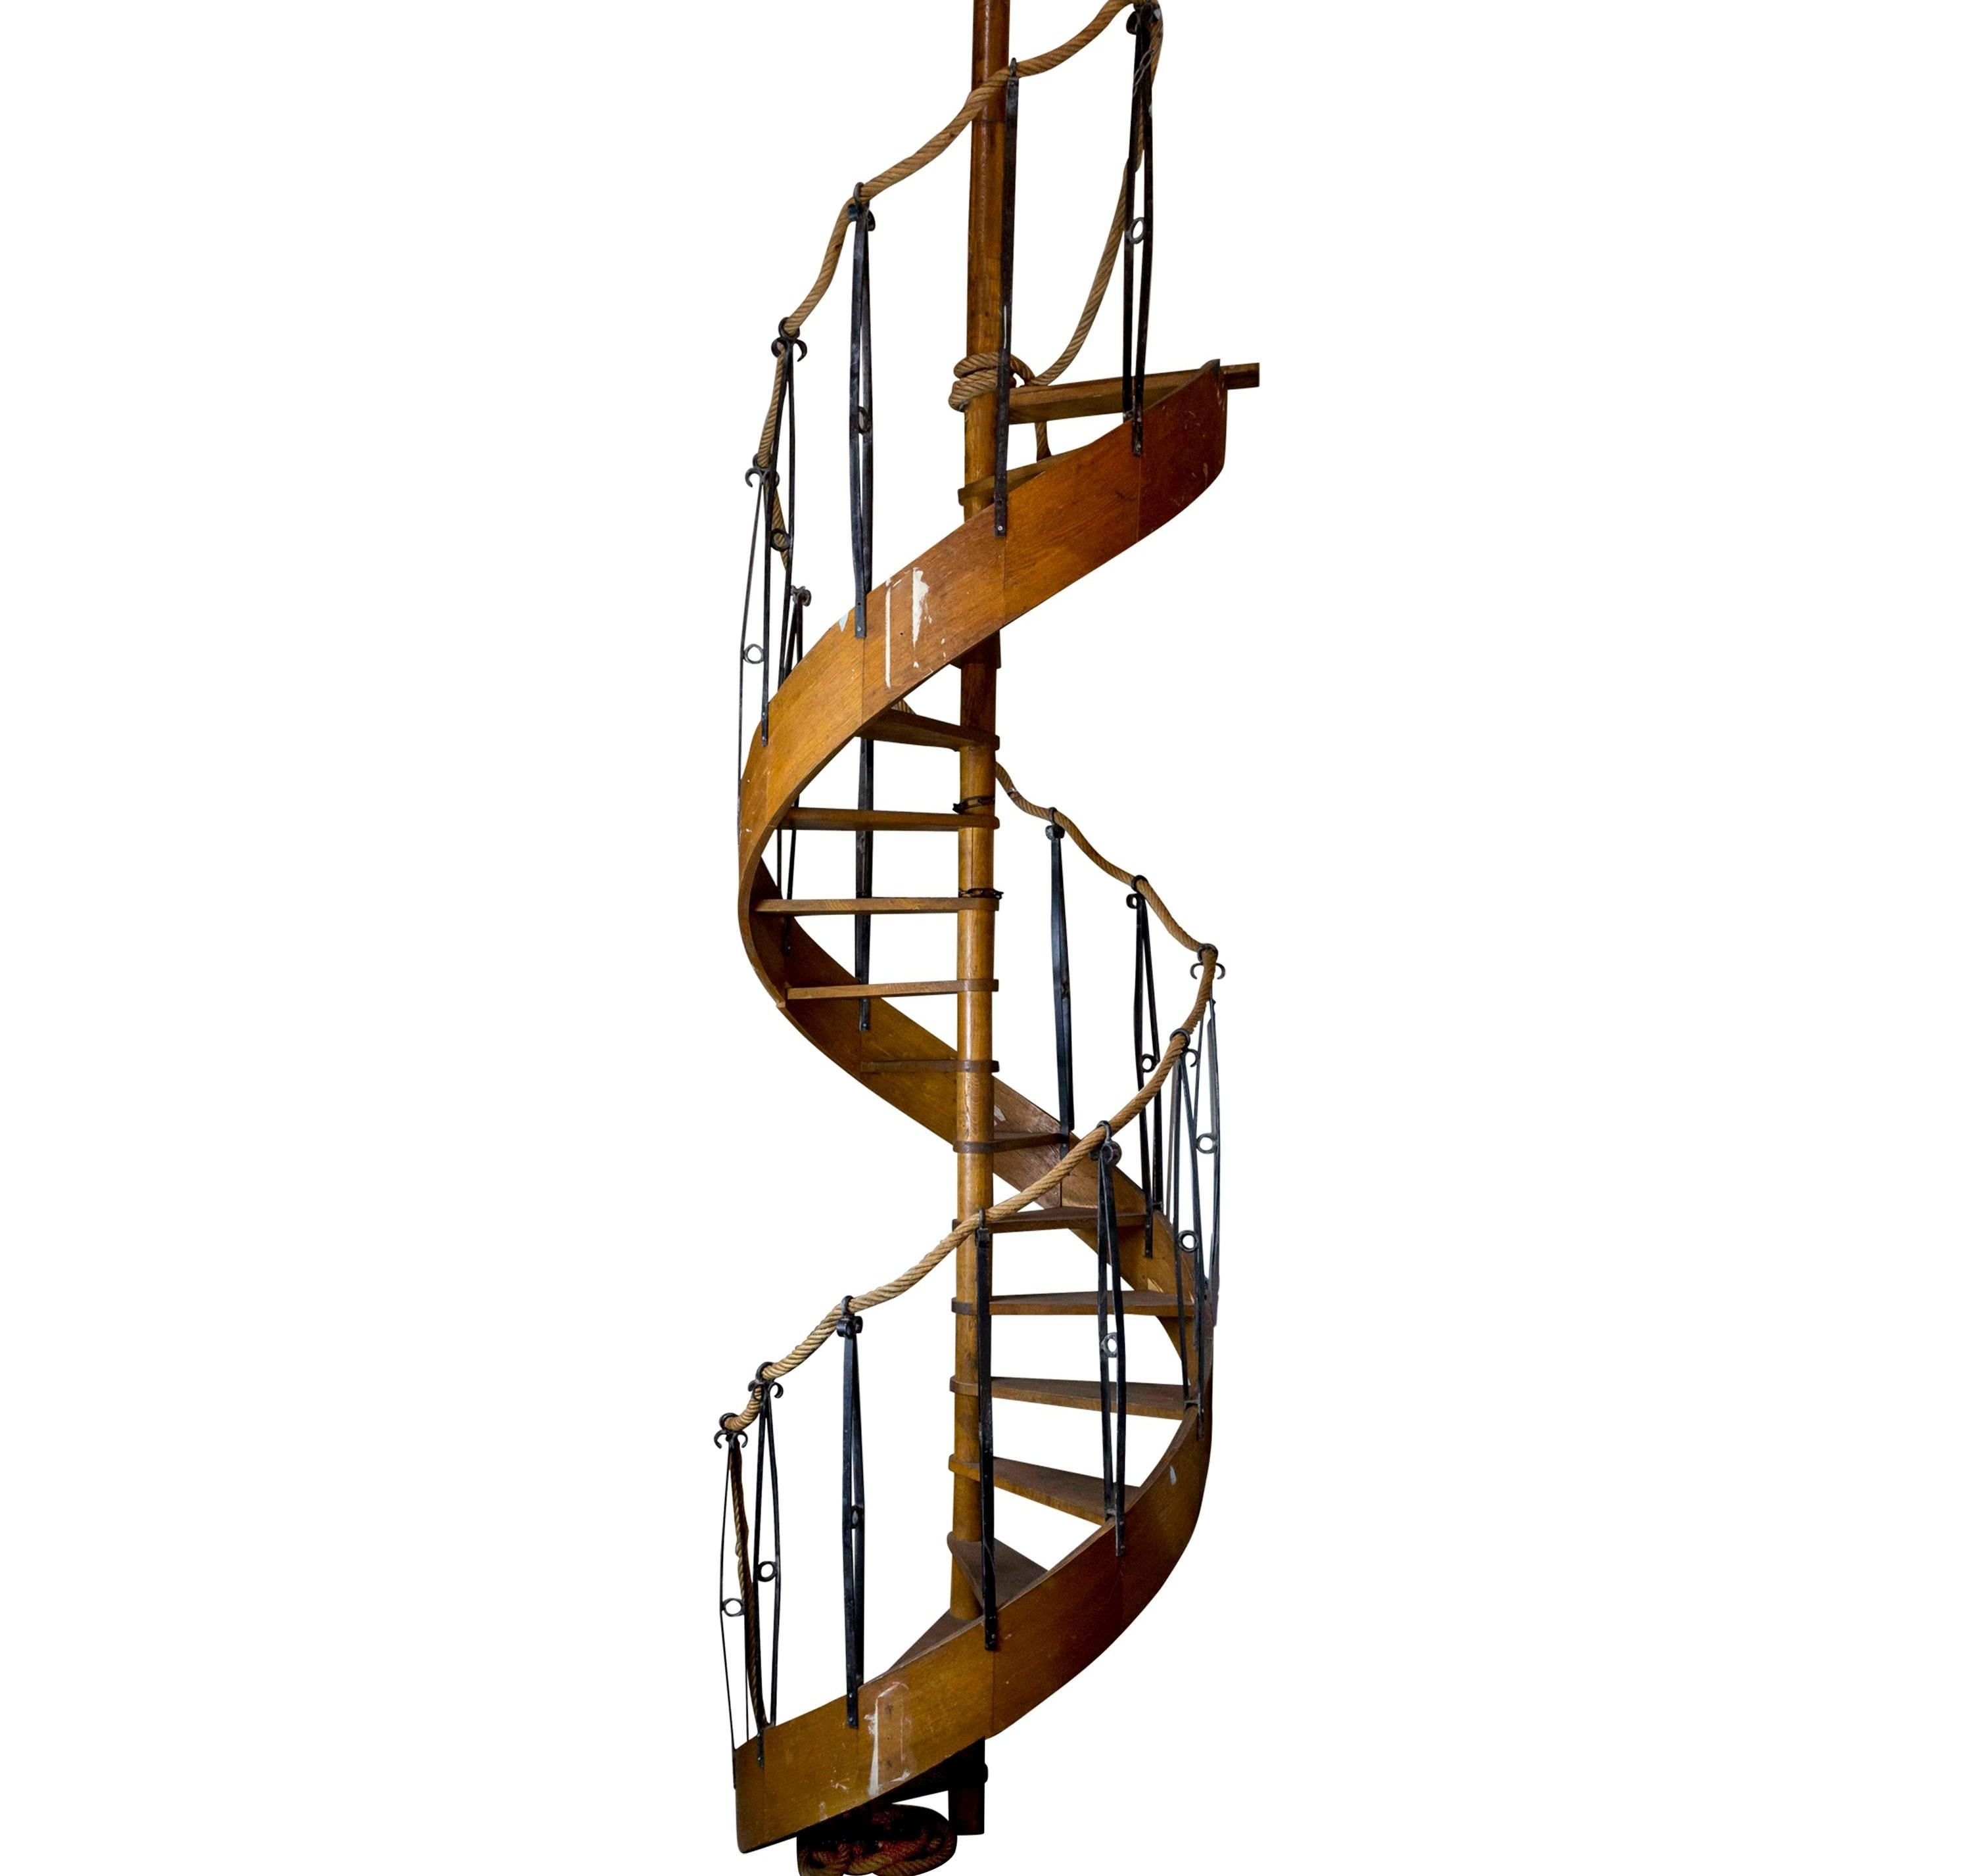 Antique And Vintage Stairs 87 For Sale At 1Stdibs | Reclaimed Wood Stairs For Sale | Stair Railing | Wooden | Staircase Makeover | Handrail | Van Gieson